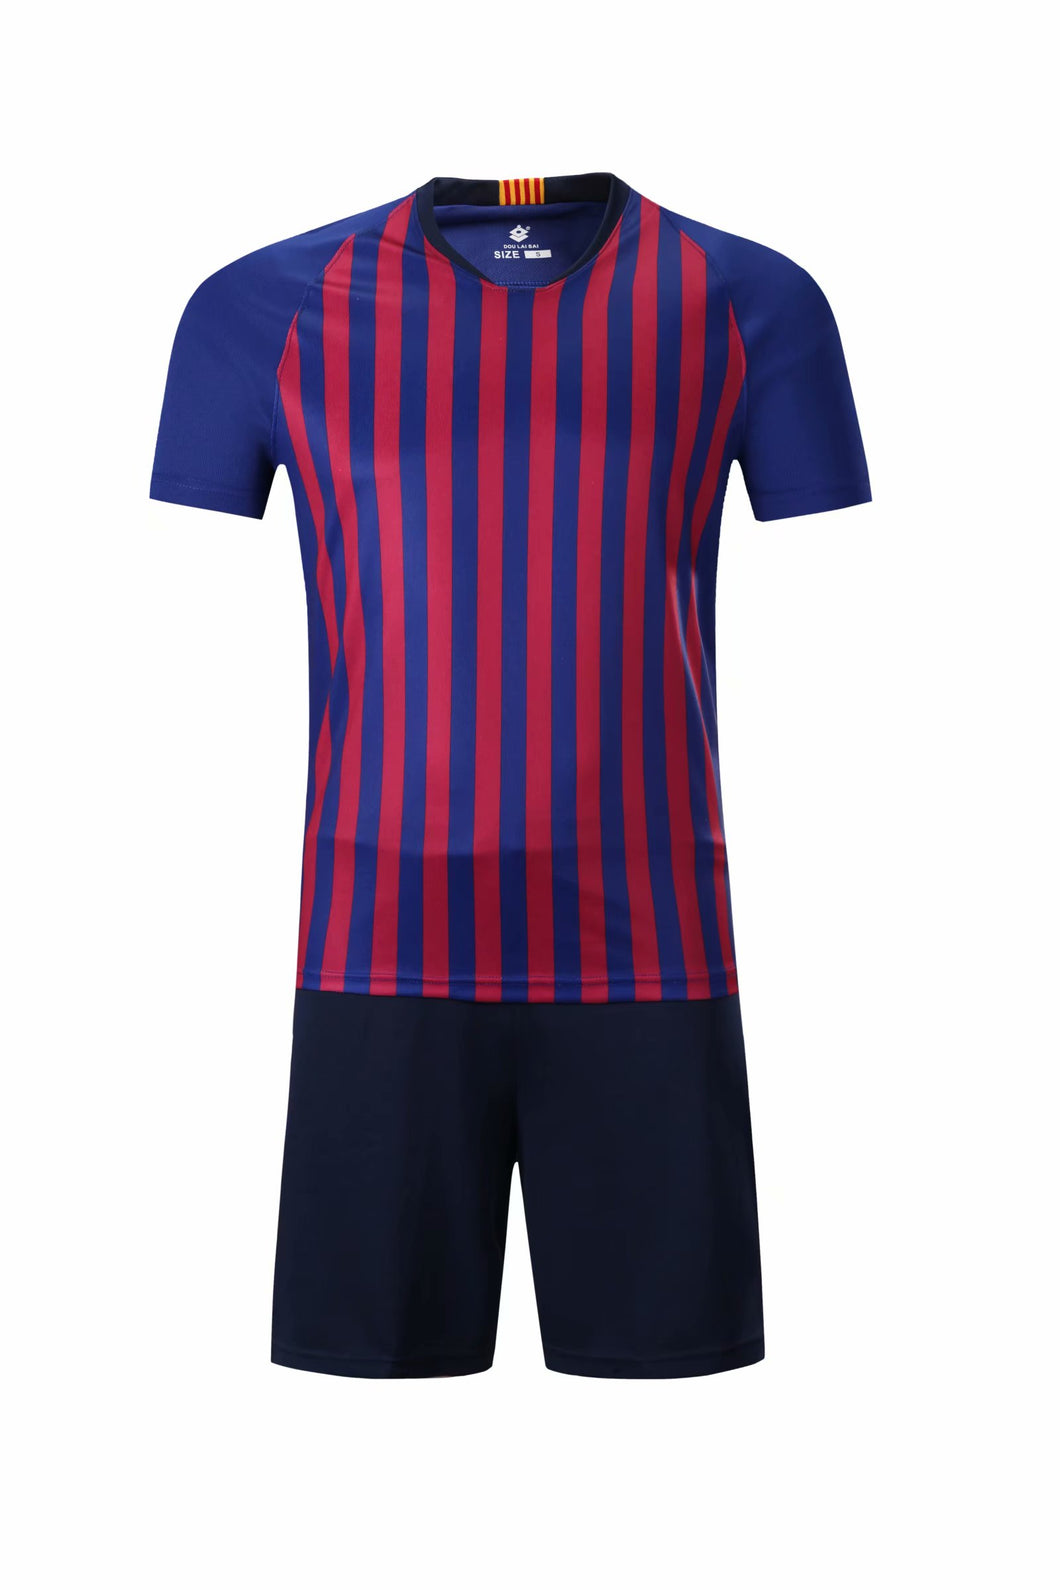 Full Football Kit - Red and Blue stripes with Black shorts.